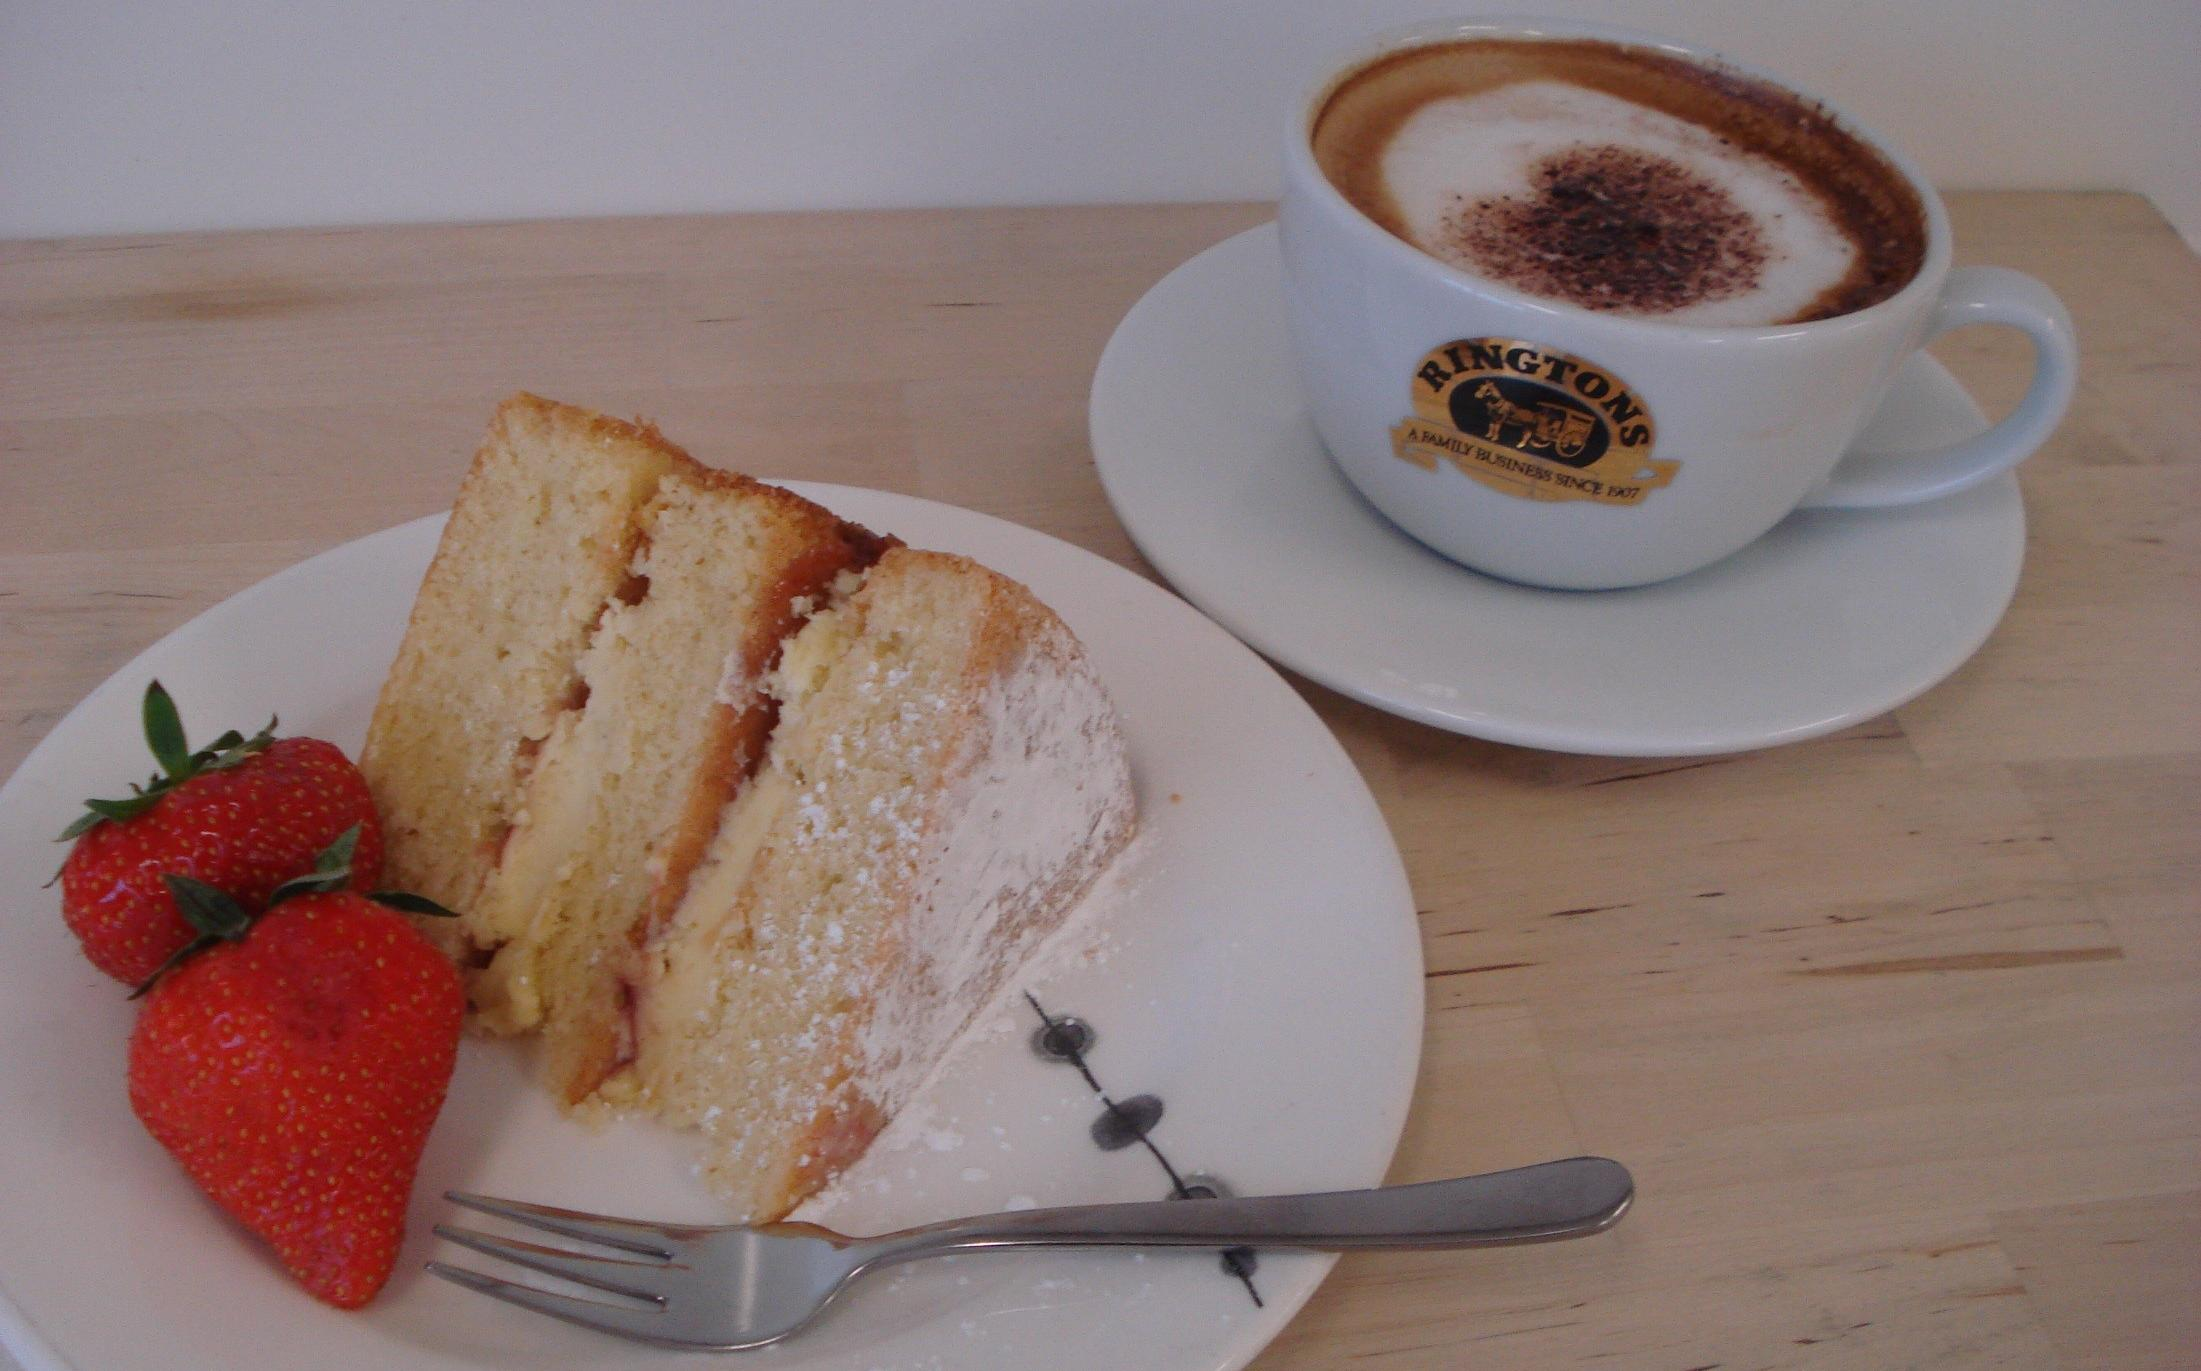 photo of a Victoria sponge cake and coffee